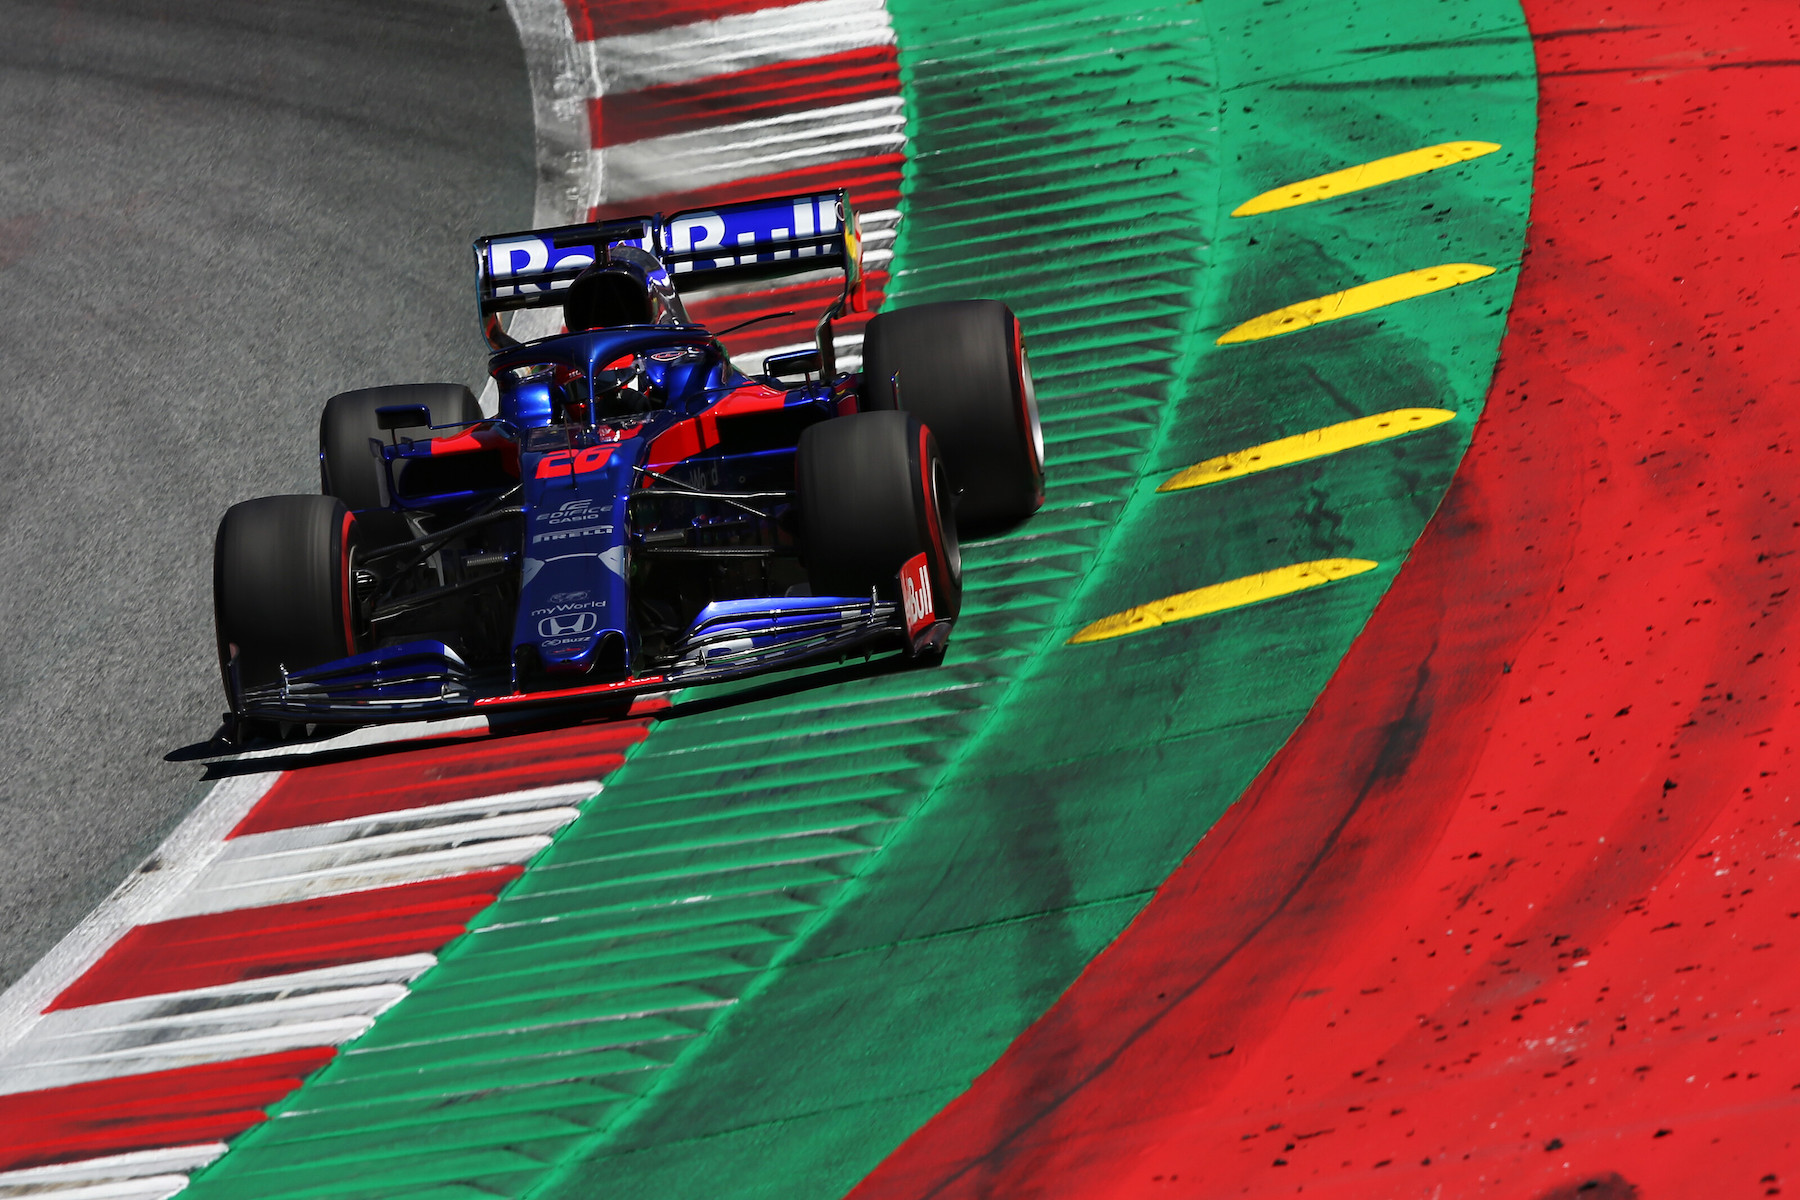 3 2019 Austrian GP Saturday 15.jpg